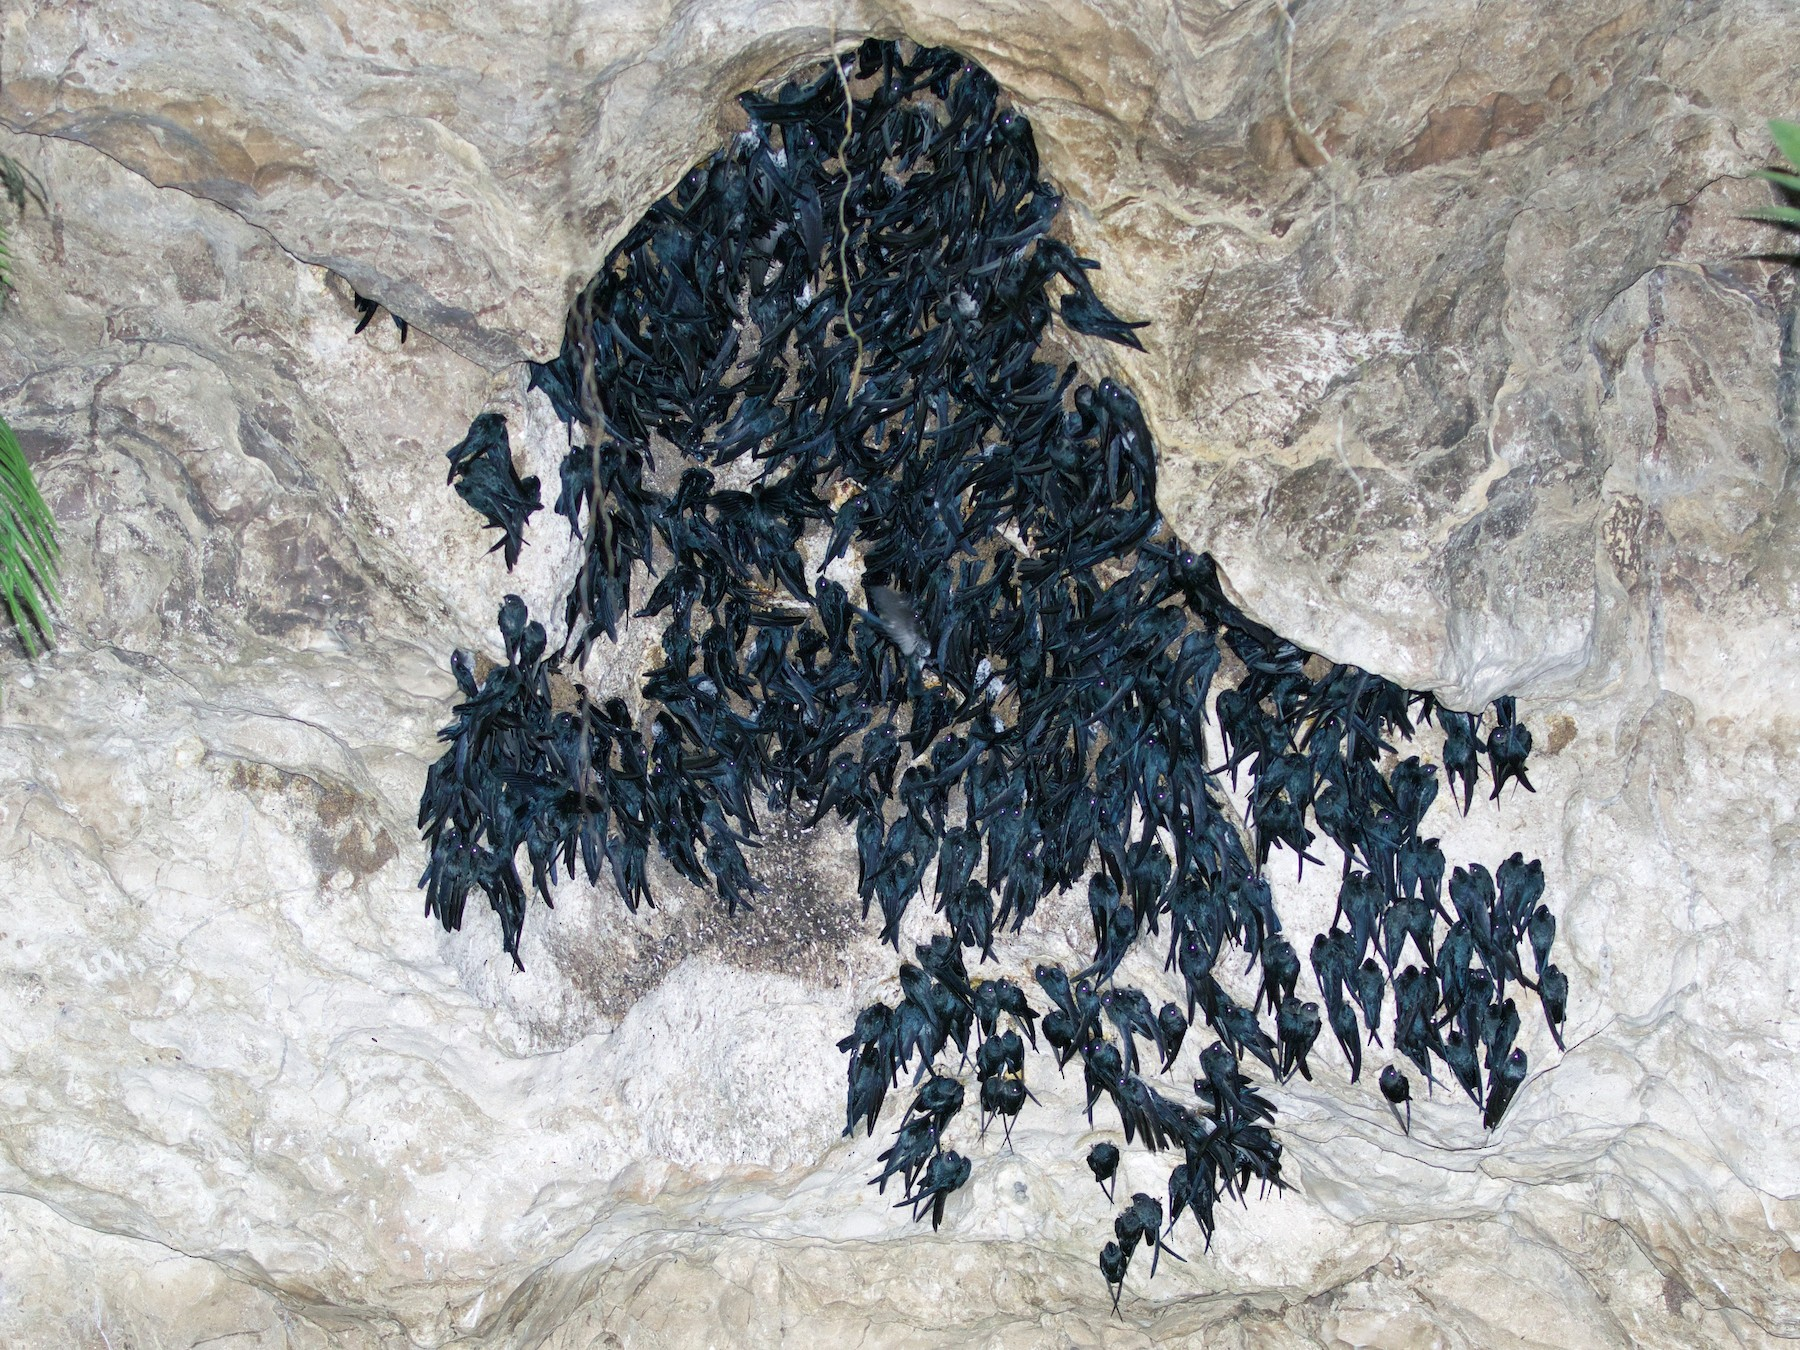 Mossy-nest Swiftlet - Scott Baker